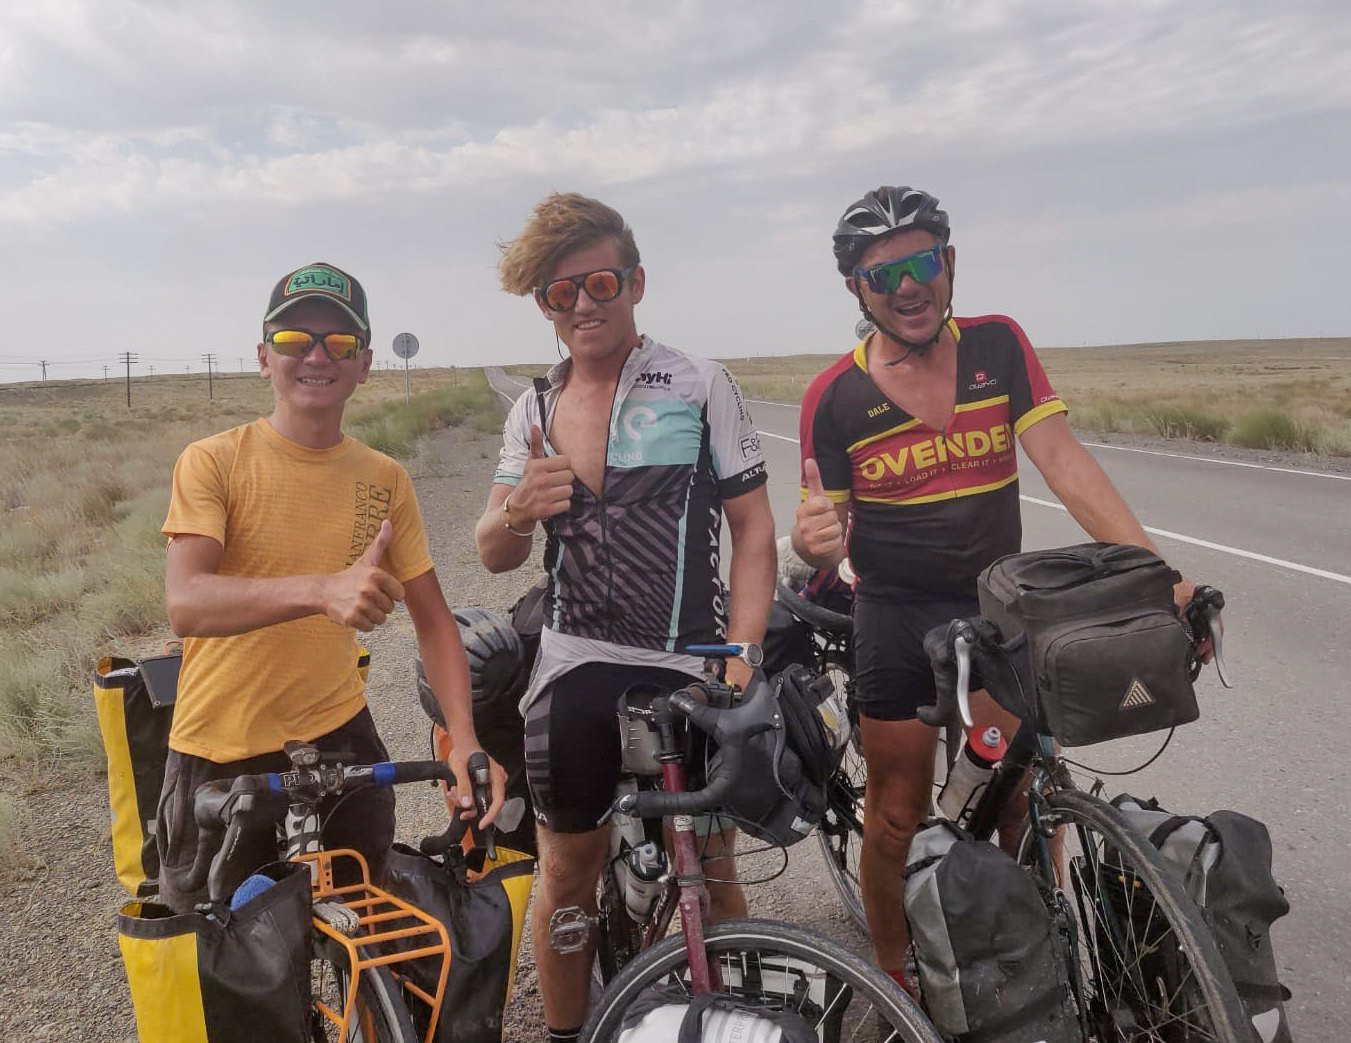 LInford and Dale meet a fellow cycle-tourist from Belarus